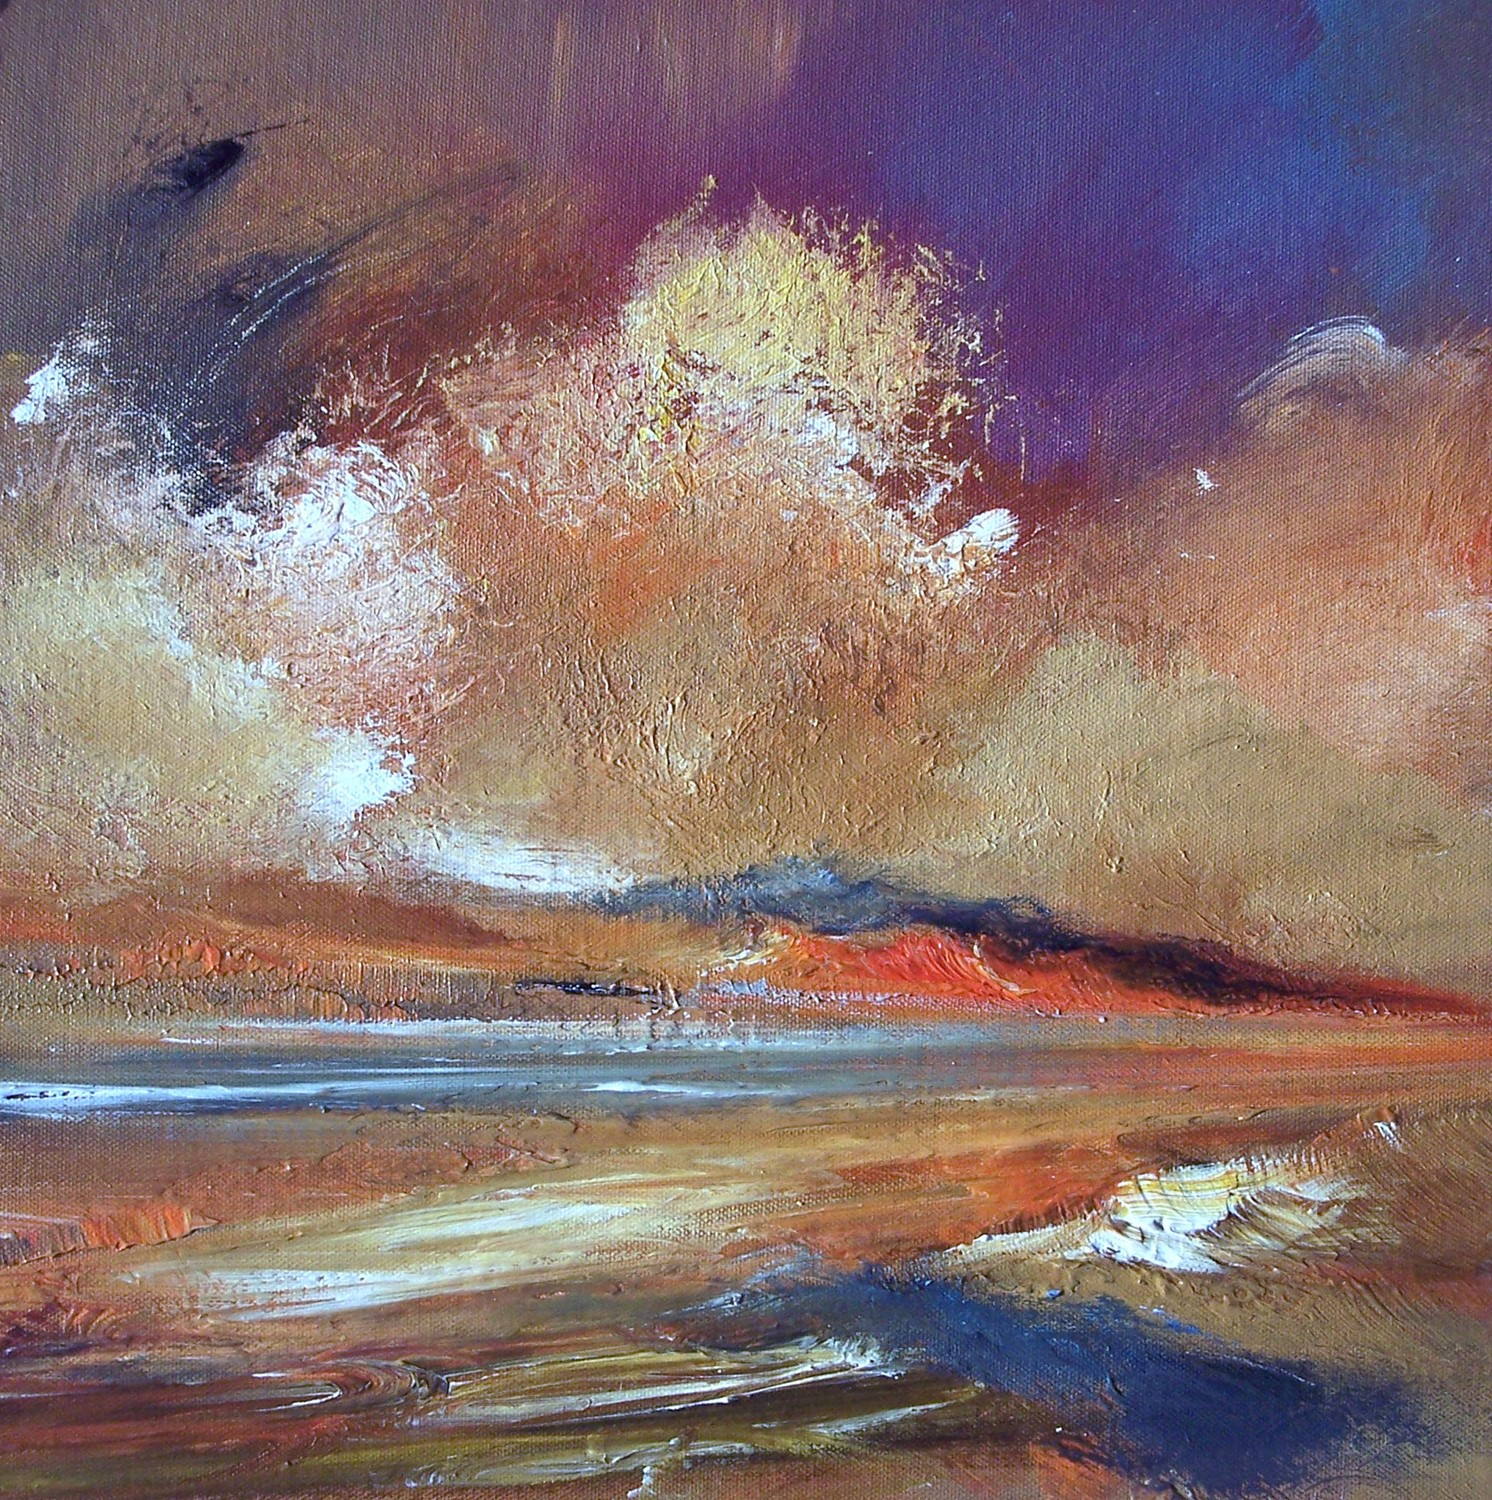 'Edging into Night' by artist Rosanne Barr